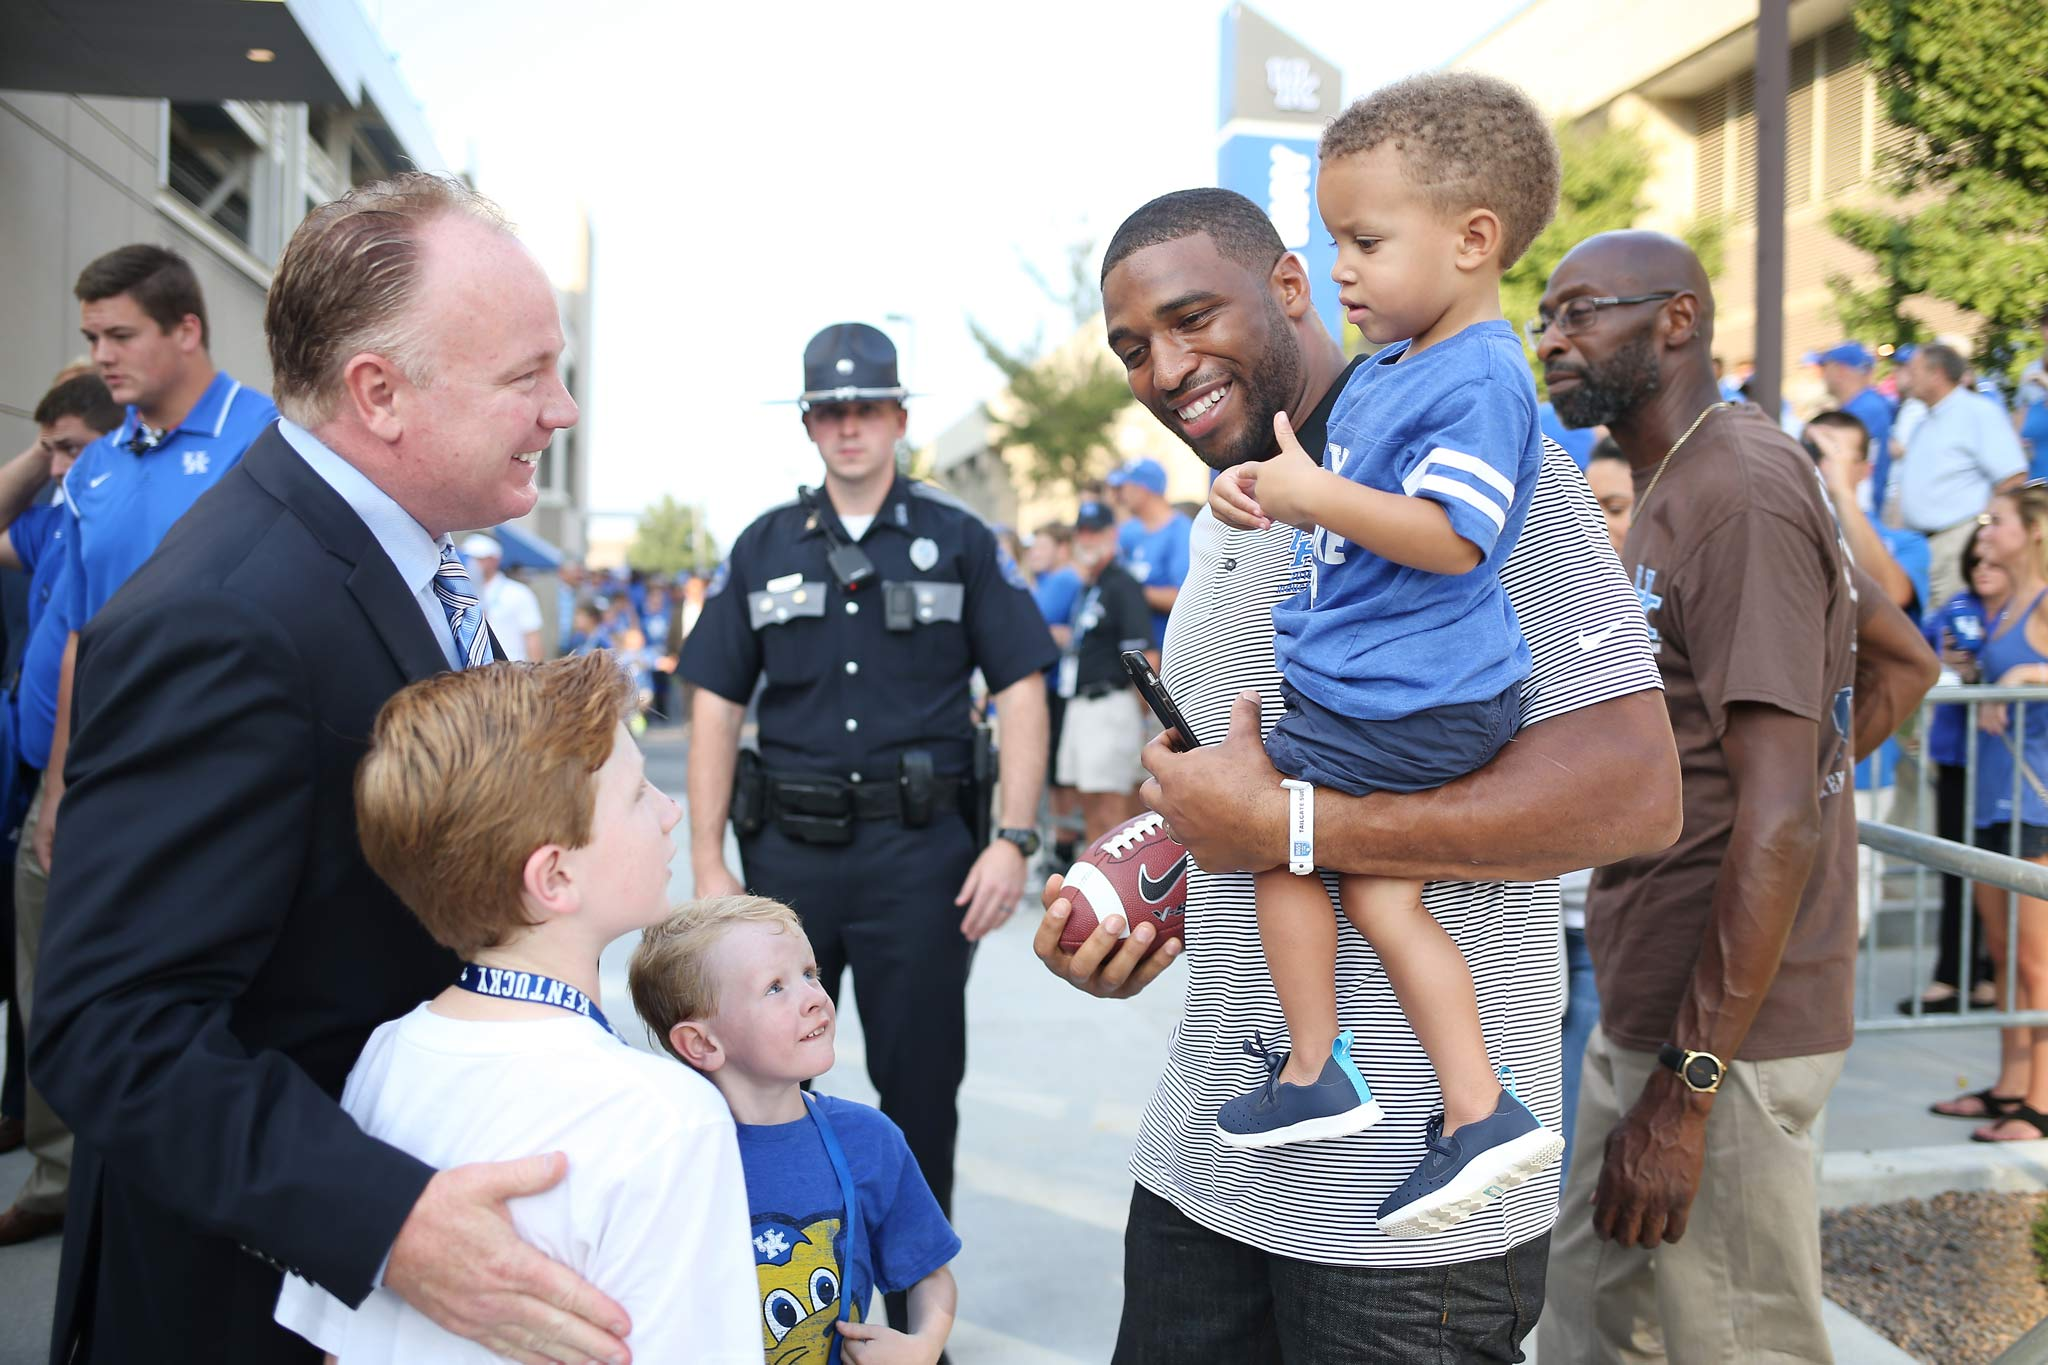 Coach Stoops and his two sons talk with Wesley Woodyard, a former UK linebacker, who is carrying a little boy in his arms.